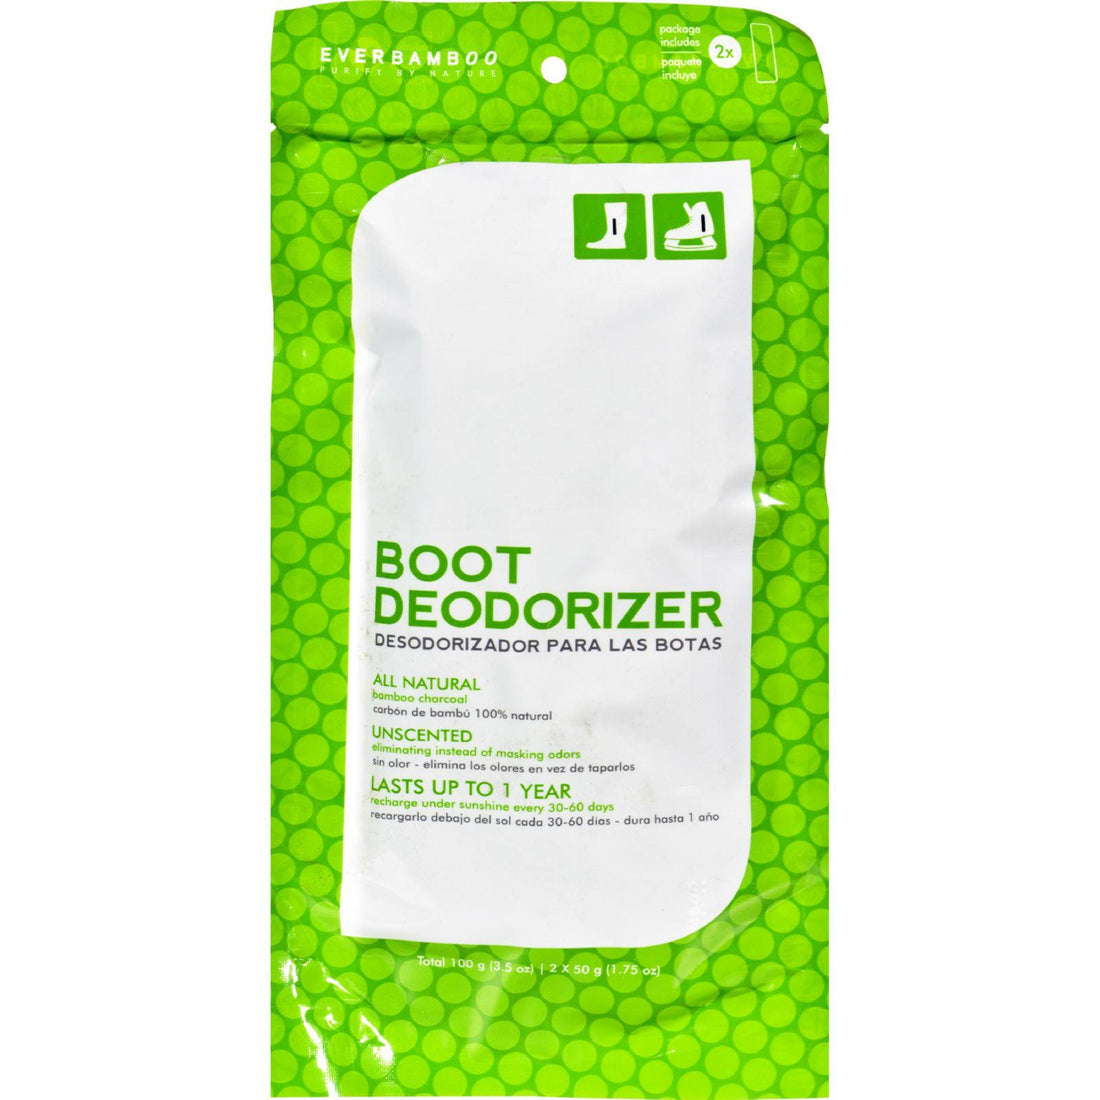 Mother Mantis: Ever Bamboo Boot Deodorizer - 2 Pack Ever Bamboo